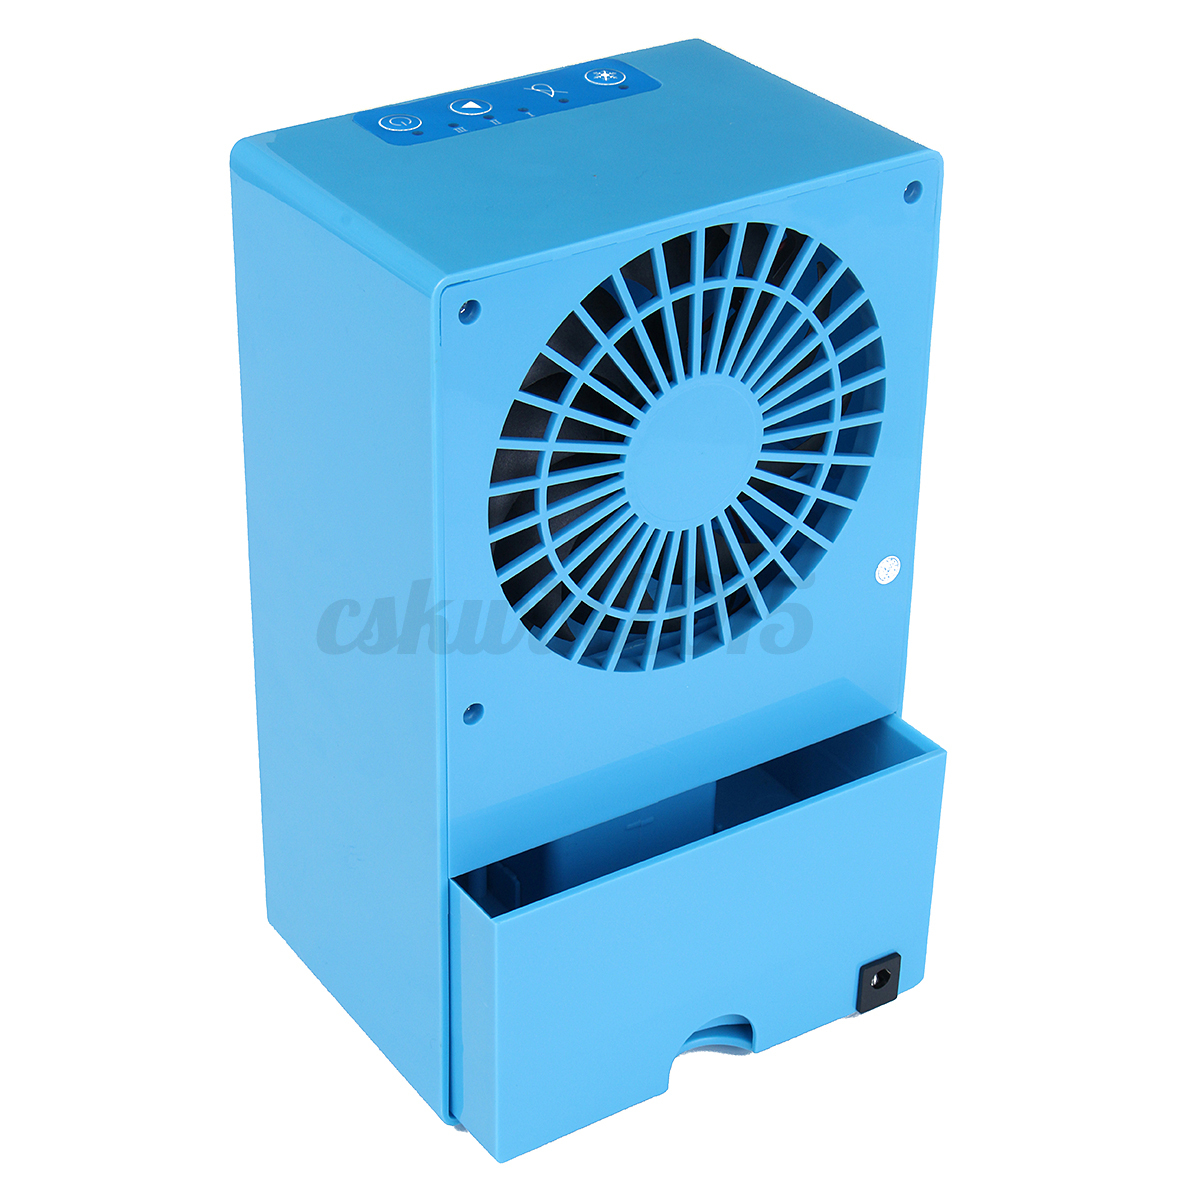 Hvac Cooling Fan : Portable handheld mini air conditioning speed spray